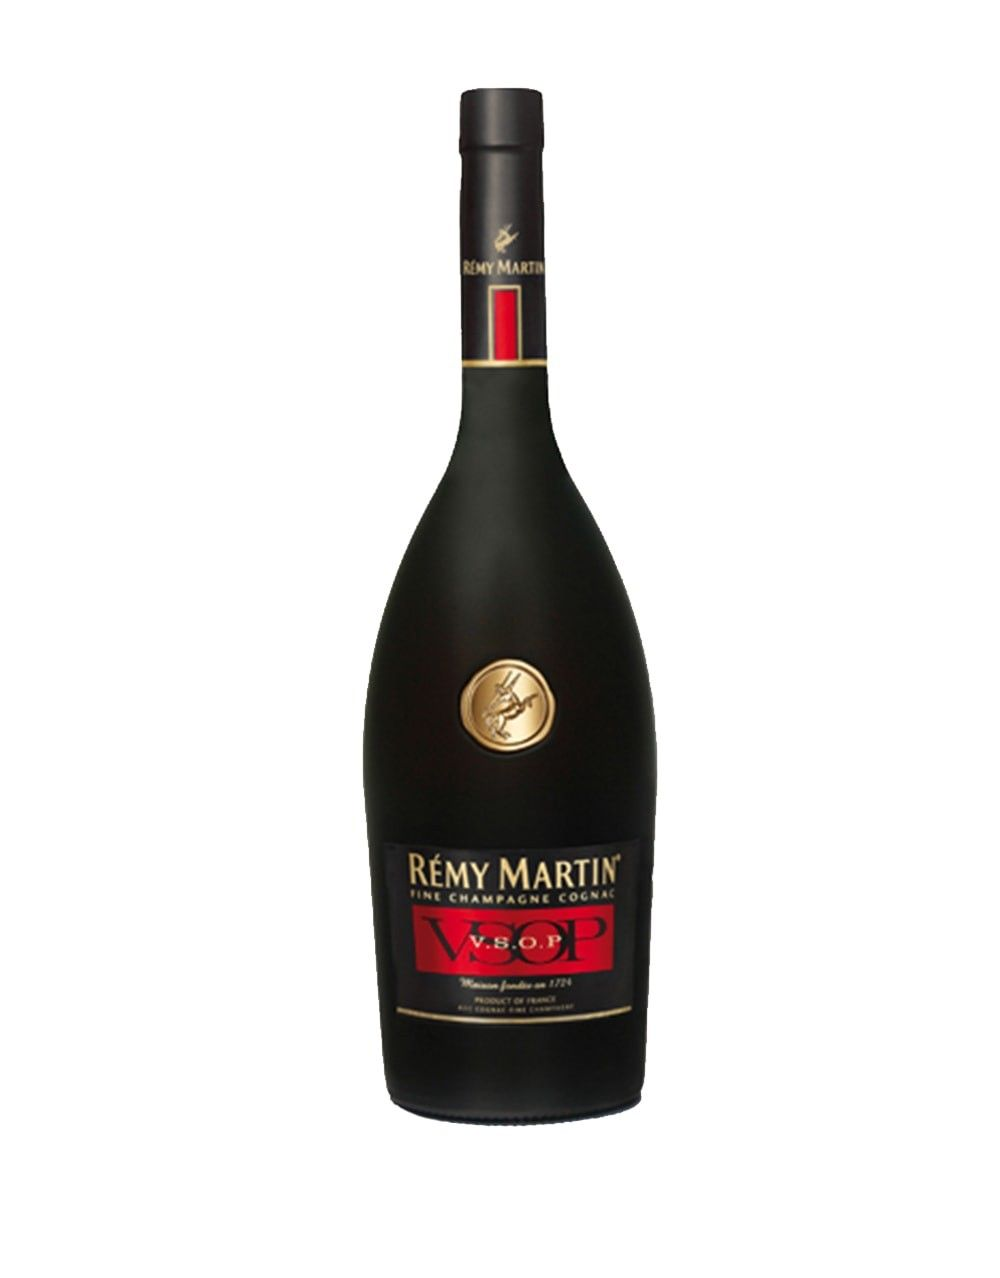 Rmy Martin VSOP Buy Online Or Send As A Gift